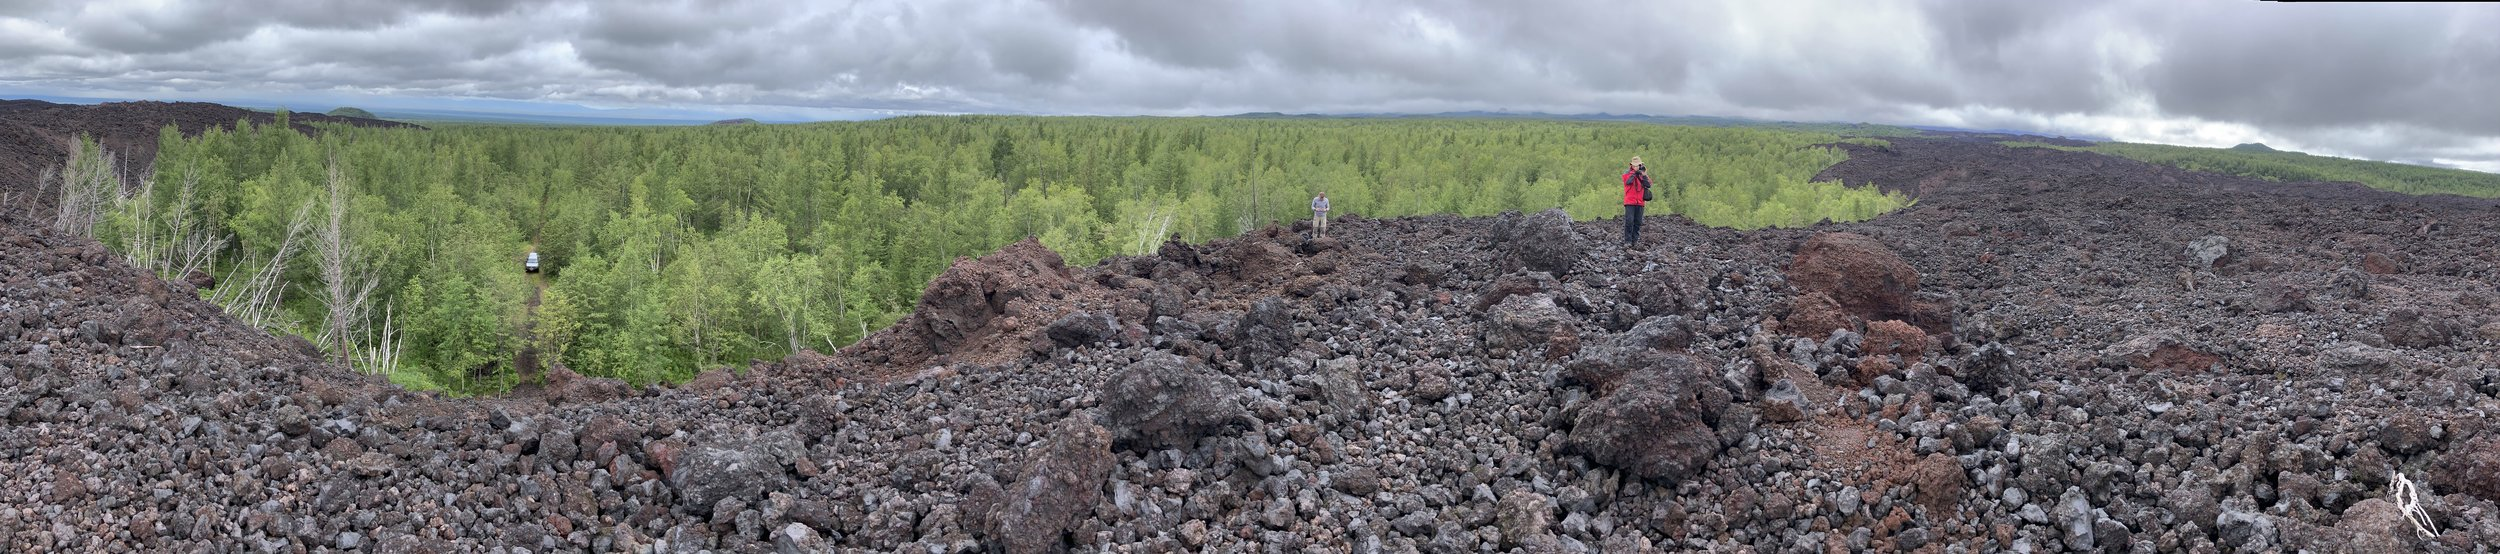 Marveling at the extensive lava flow.